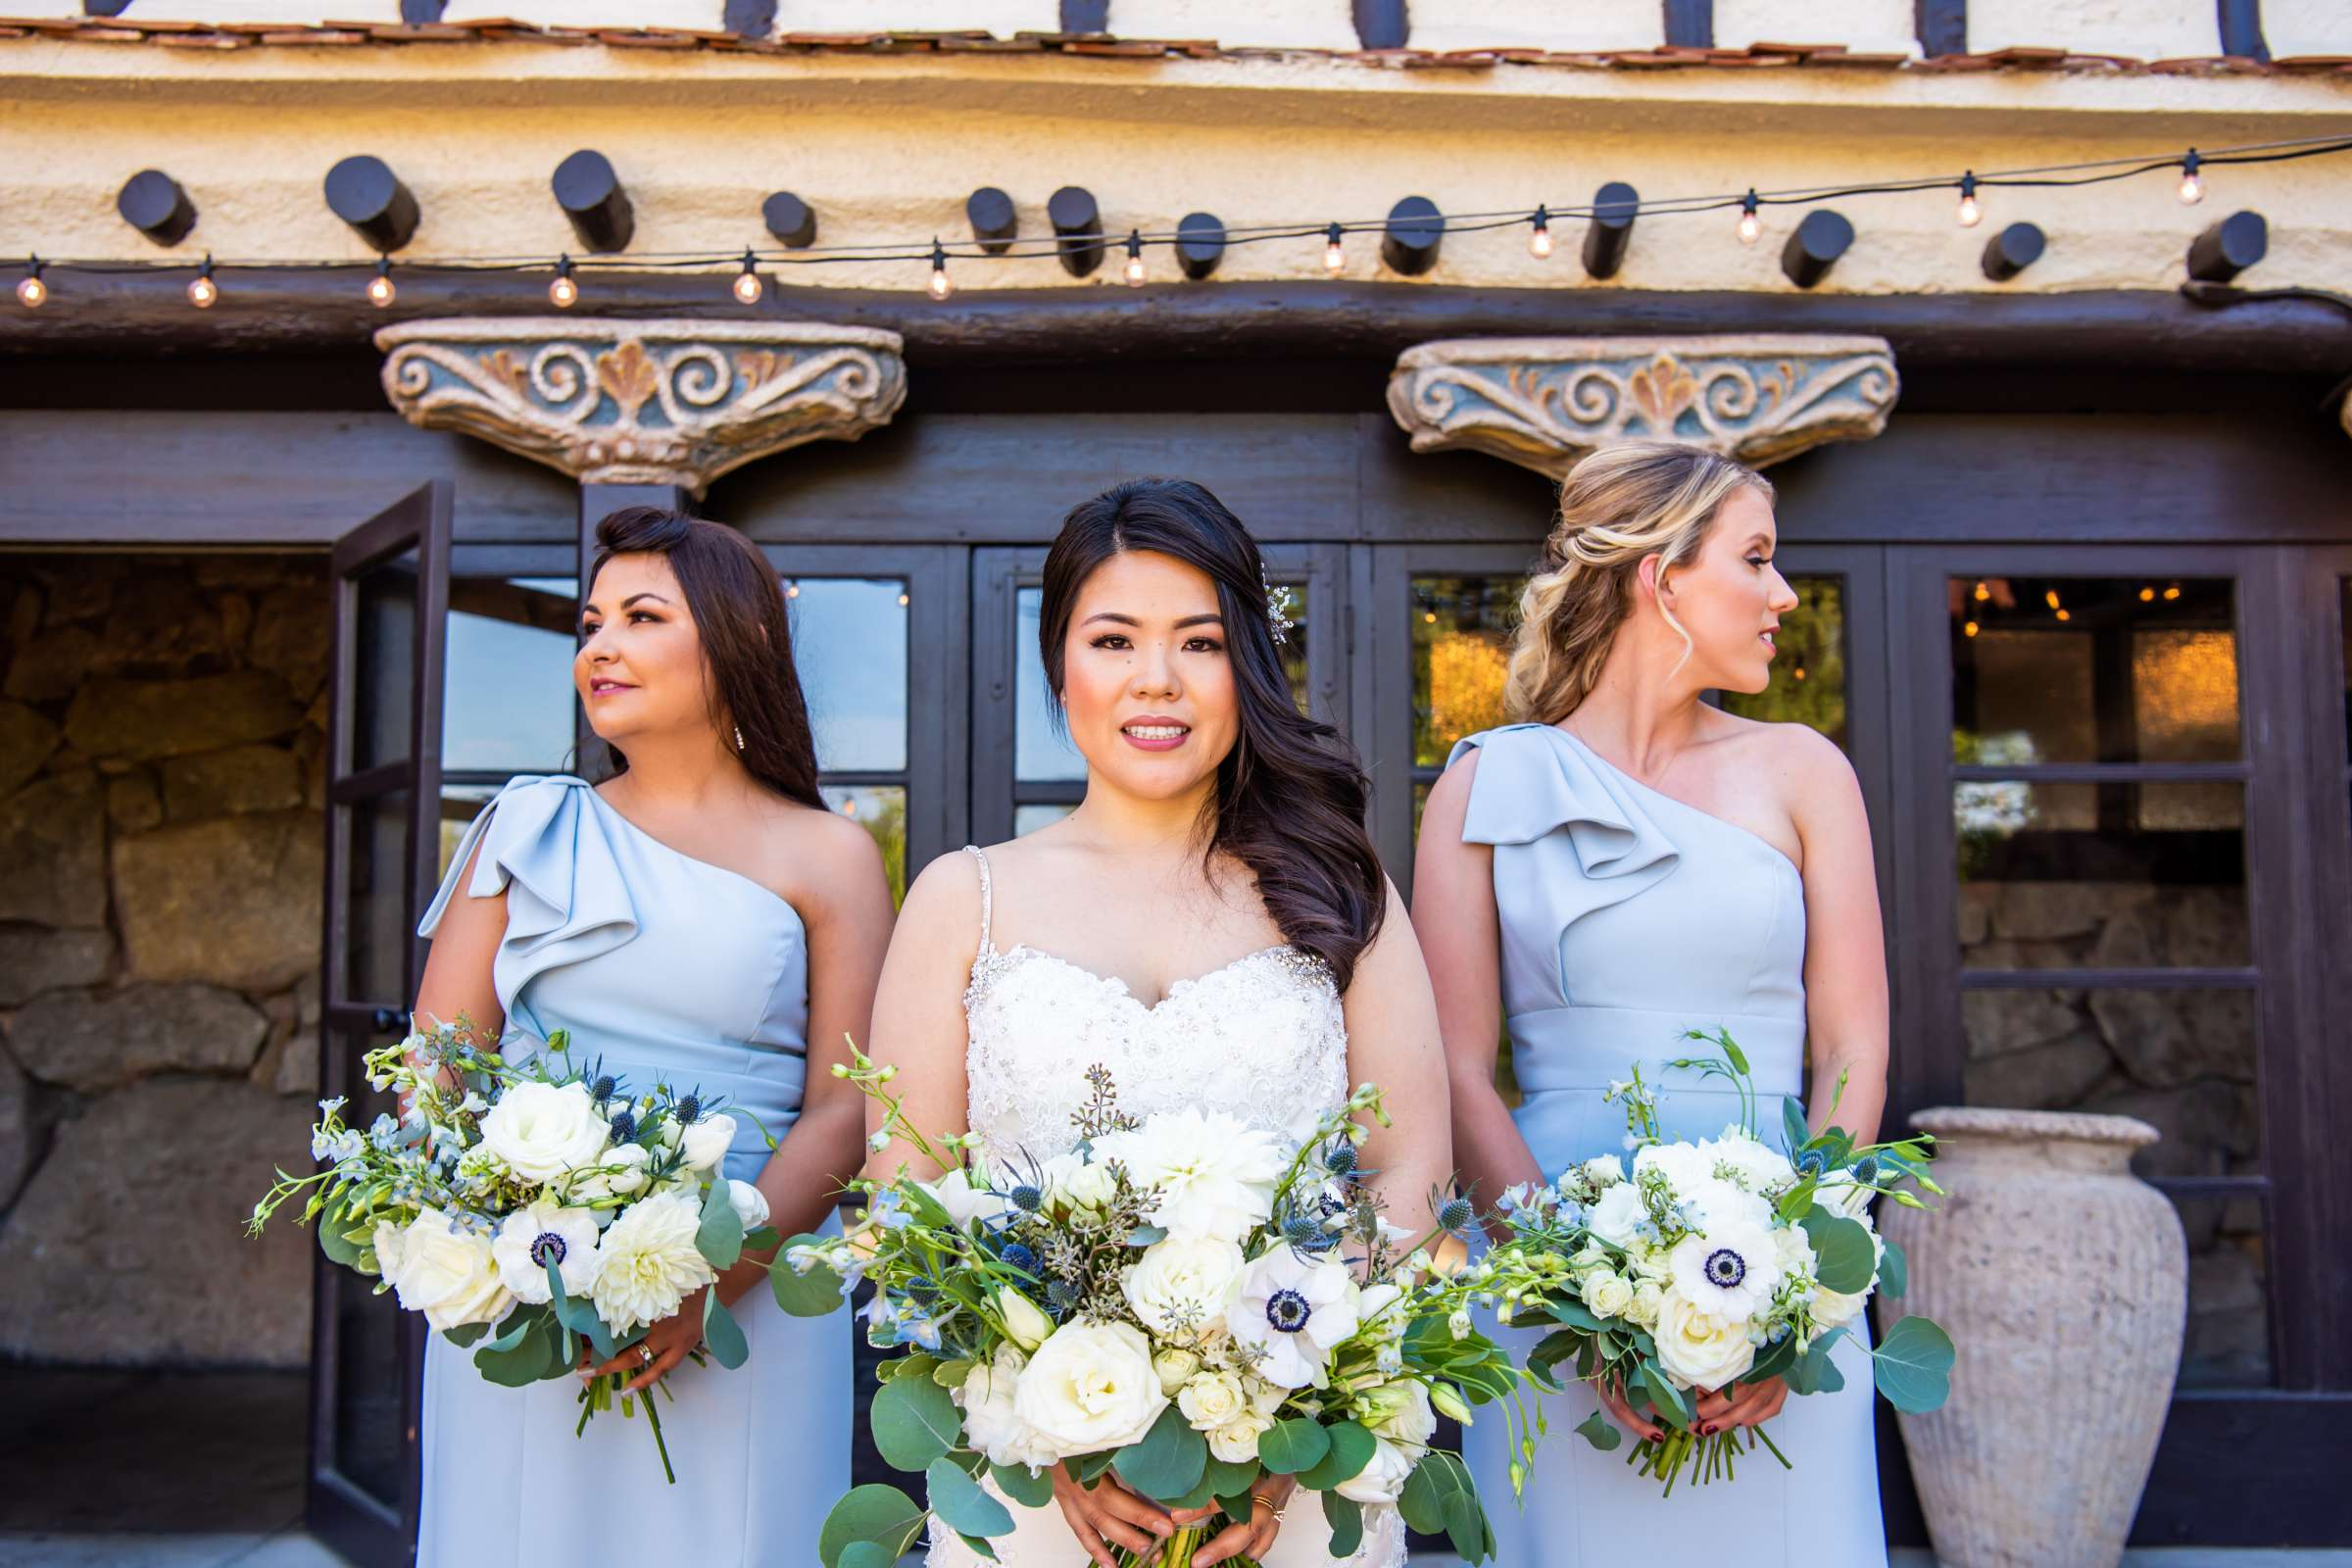 Mt Woodson Castle Wedding coordinated by I Do Weddings, Aya and Jared Wedding Photo #486909 by True Photography